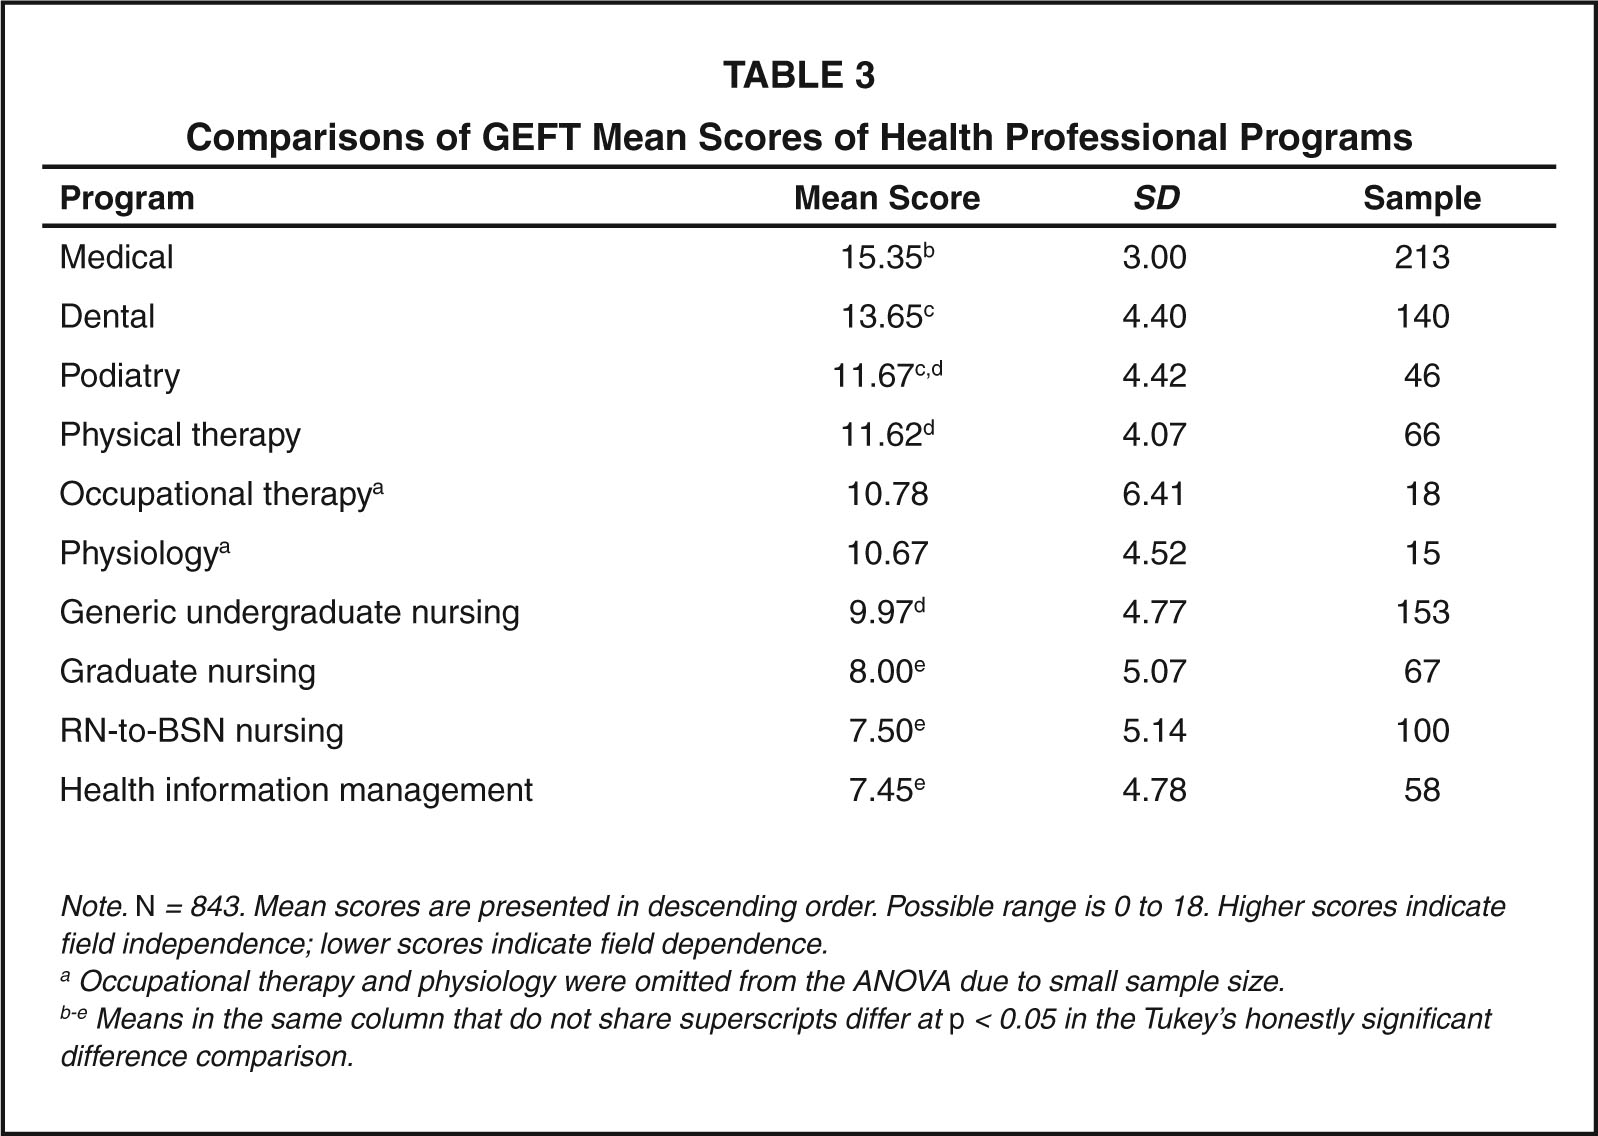 Comparisons of Geft Mean Scores of Health Professional Programs